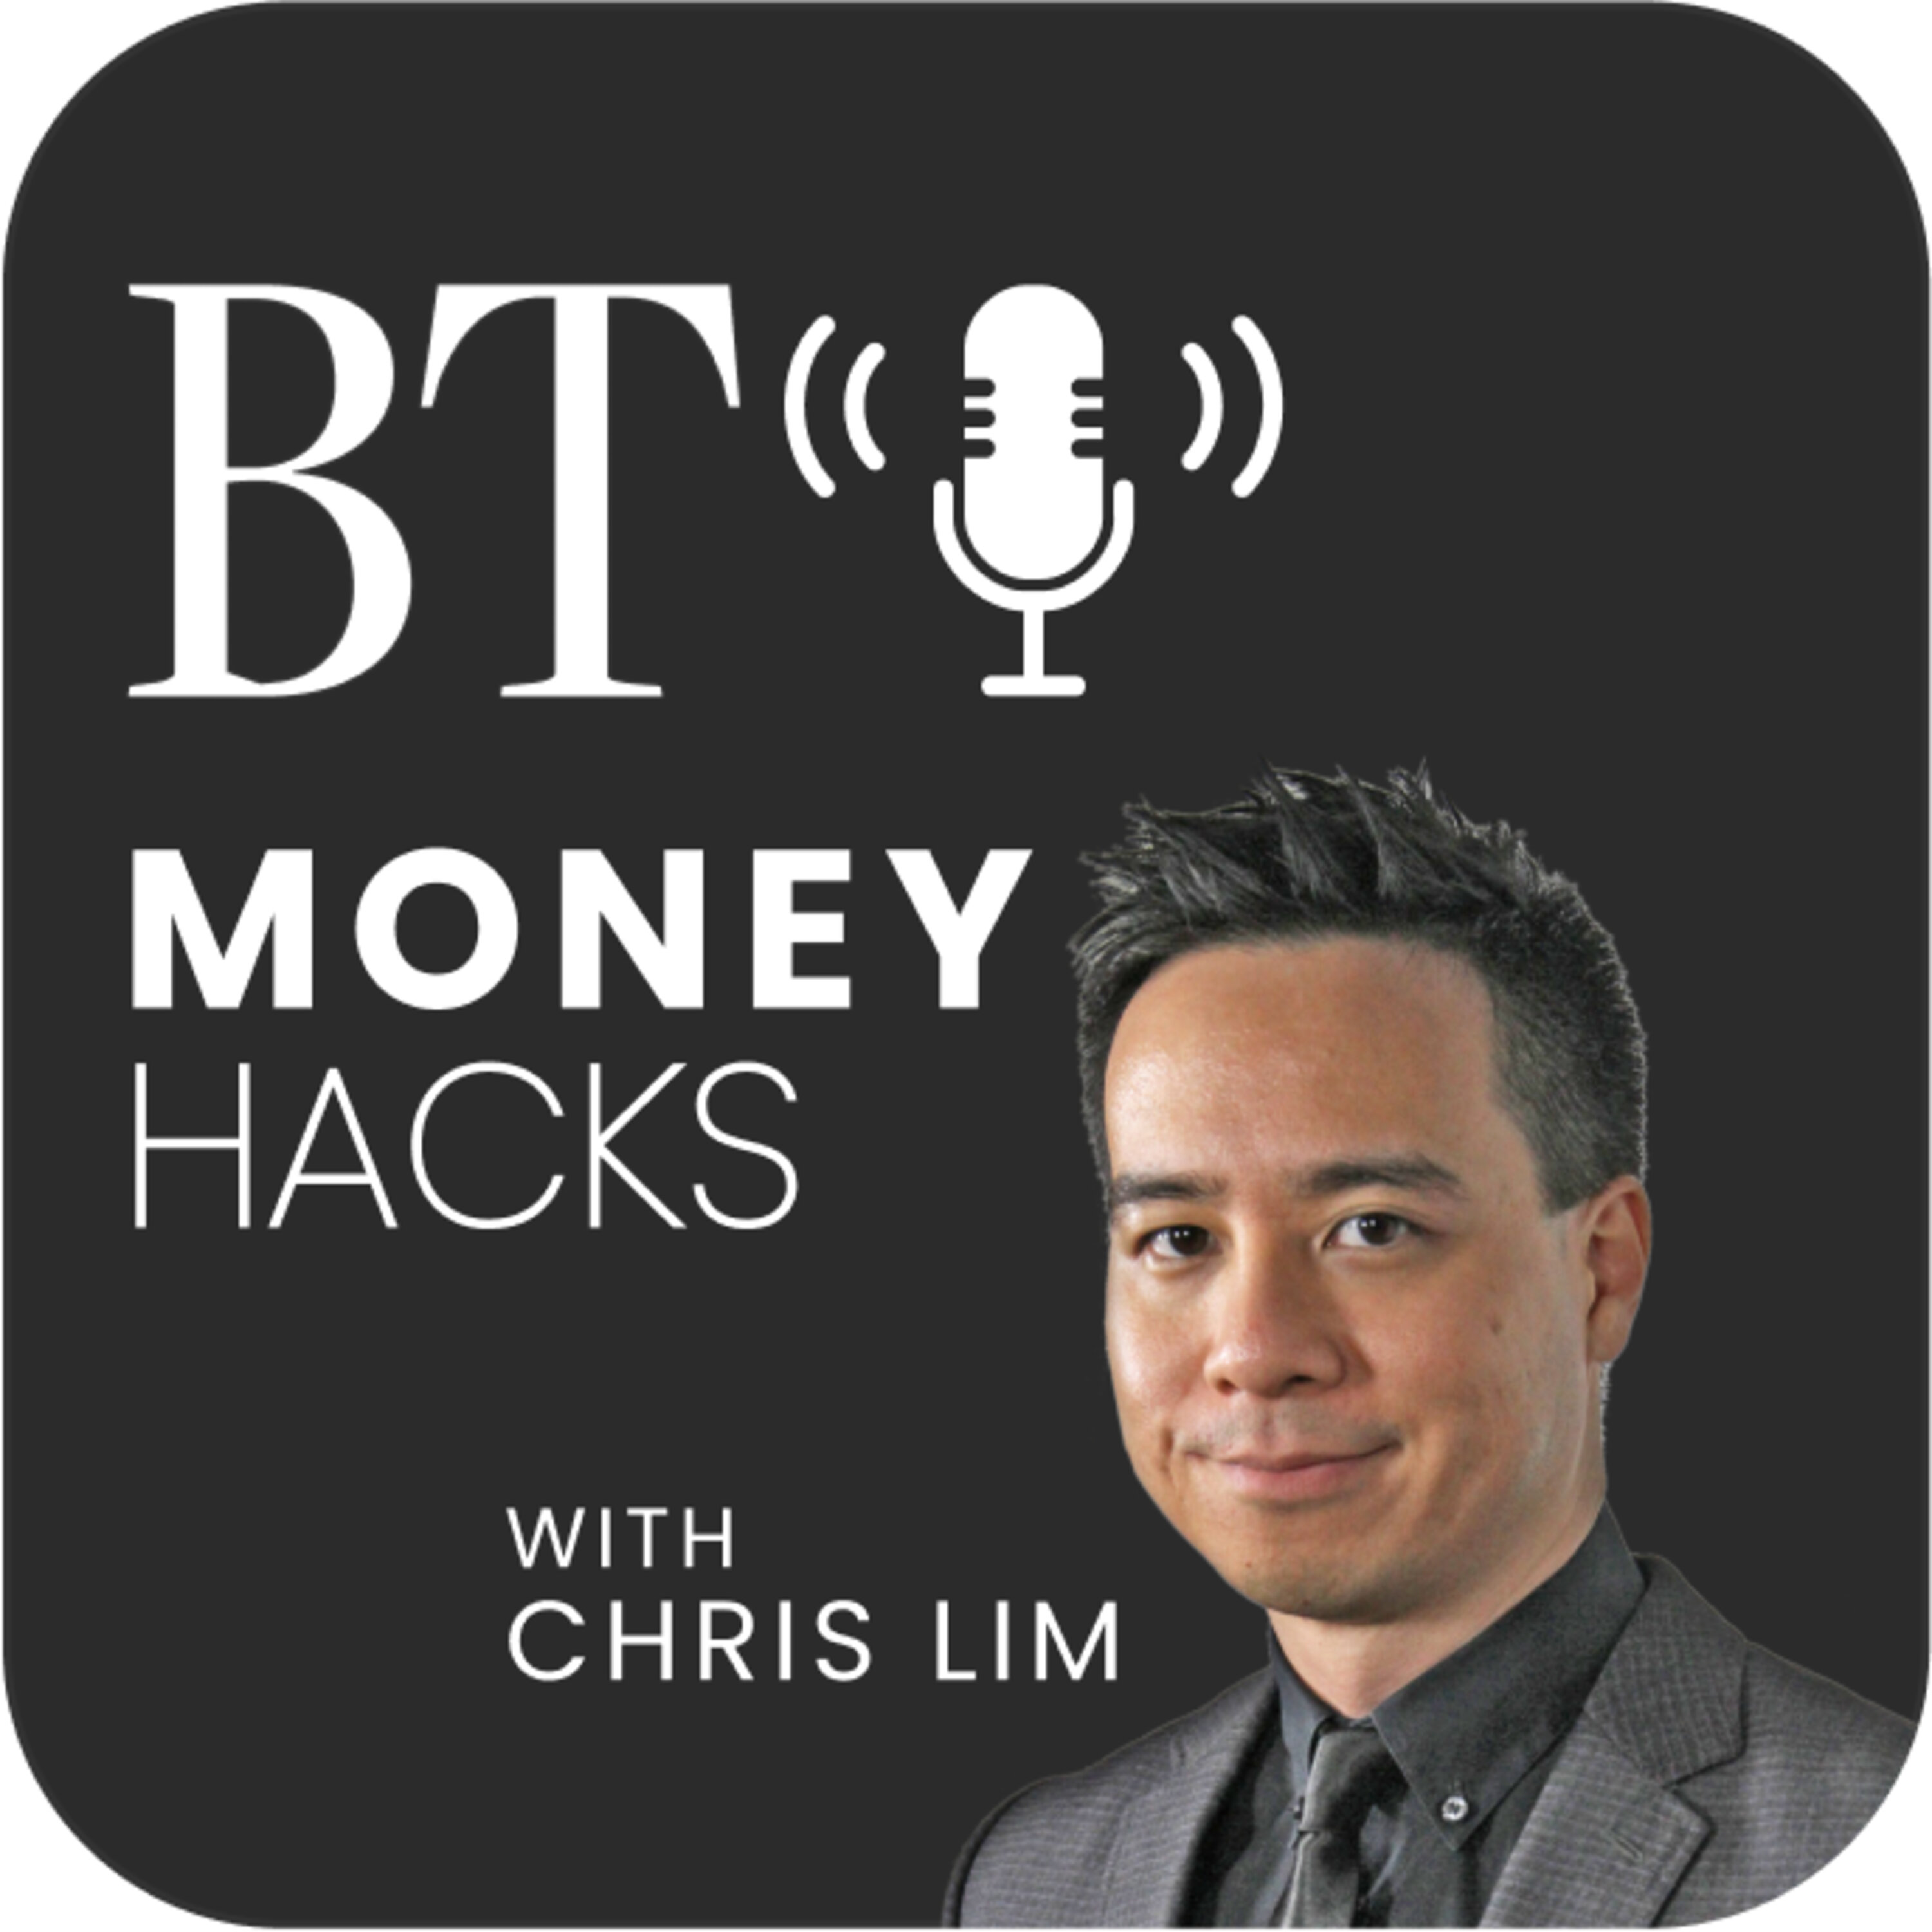 Protect digital financial assets and even large amounts such as 1 bitcoin: BT Money Hacks Ep 88